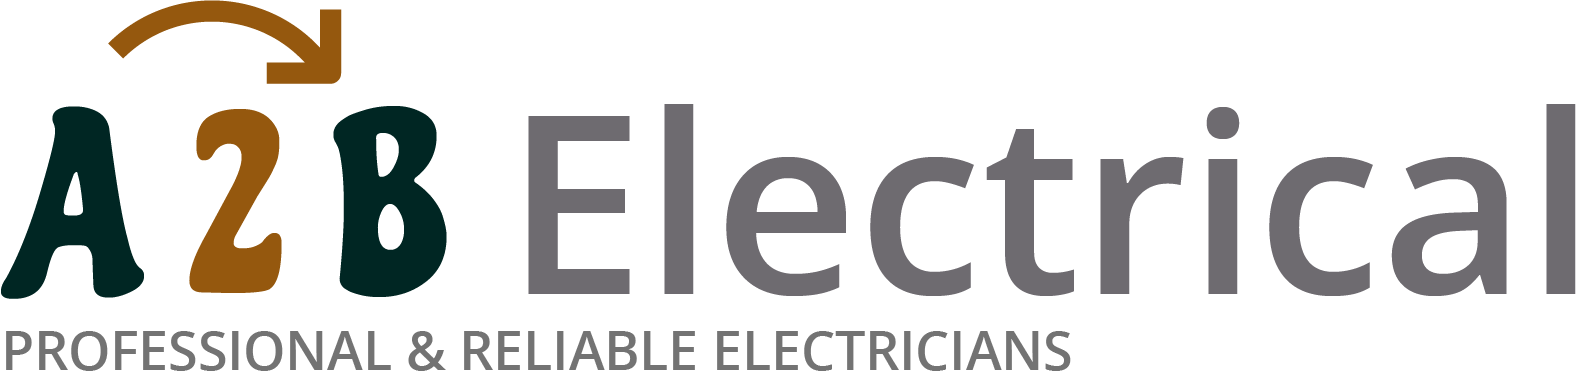 If you have electrical wiring problems in St Johns Wood, we can provide an electrician to have a look for you.